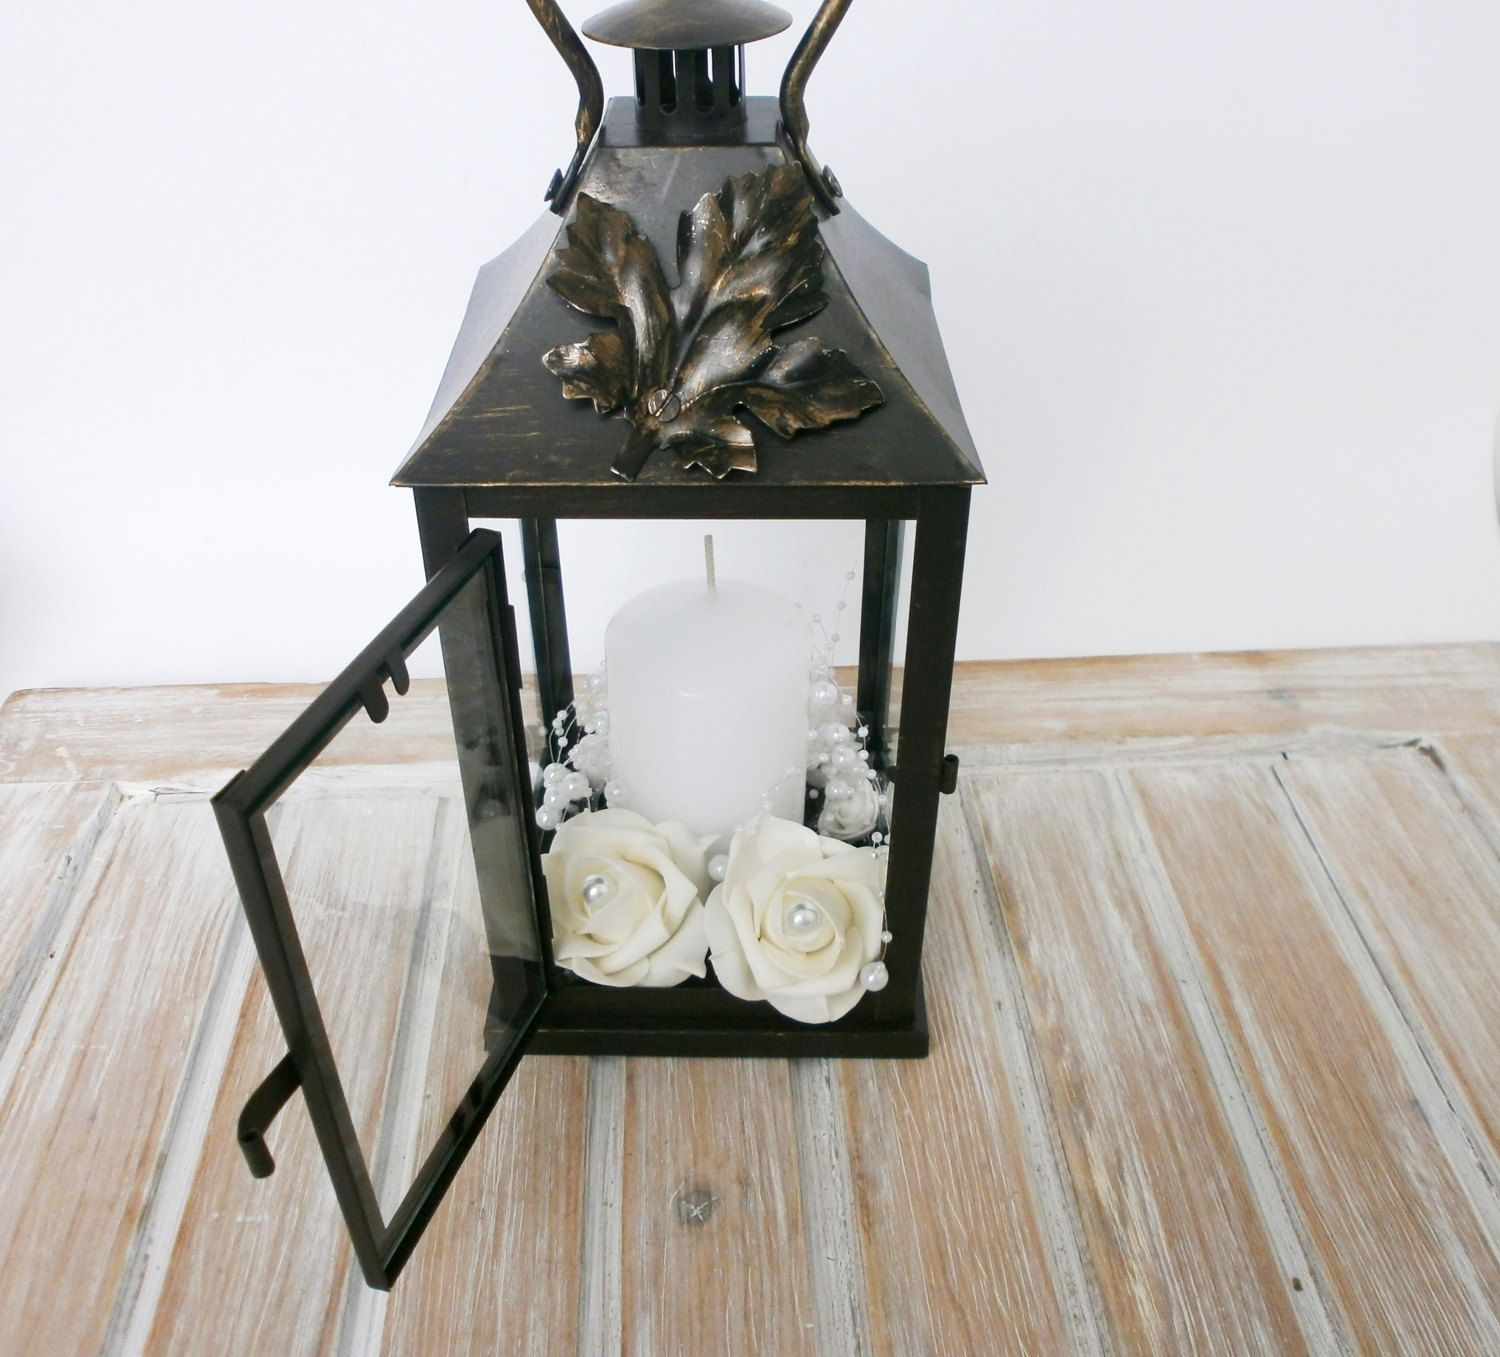 Rustic Lantern Wedding Lantern Rustic Wedding Centerpiece Rustic Candle Holder